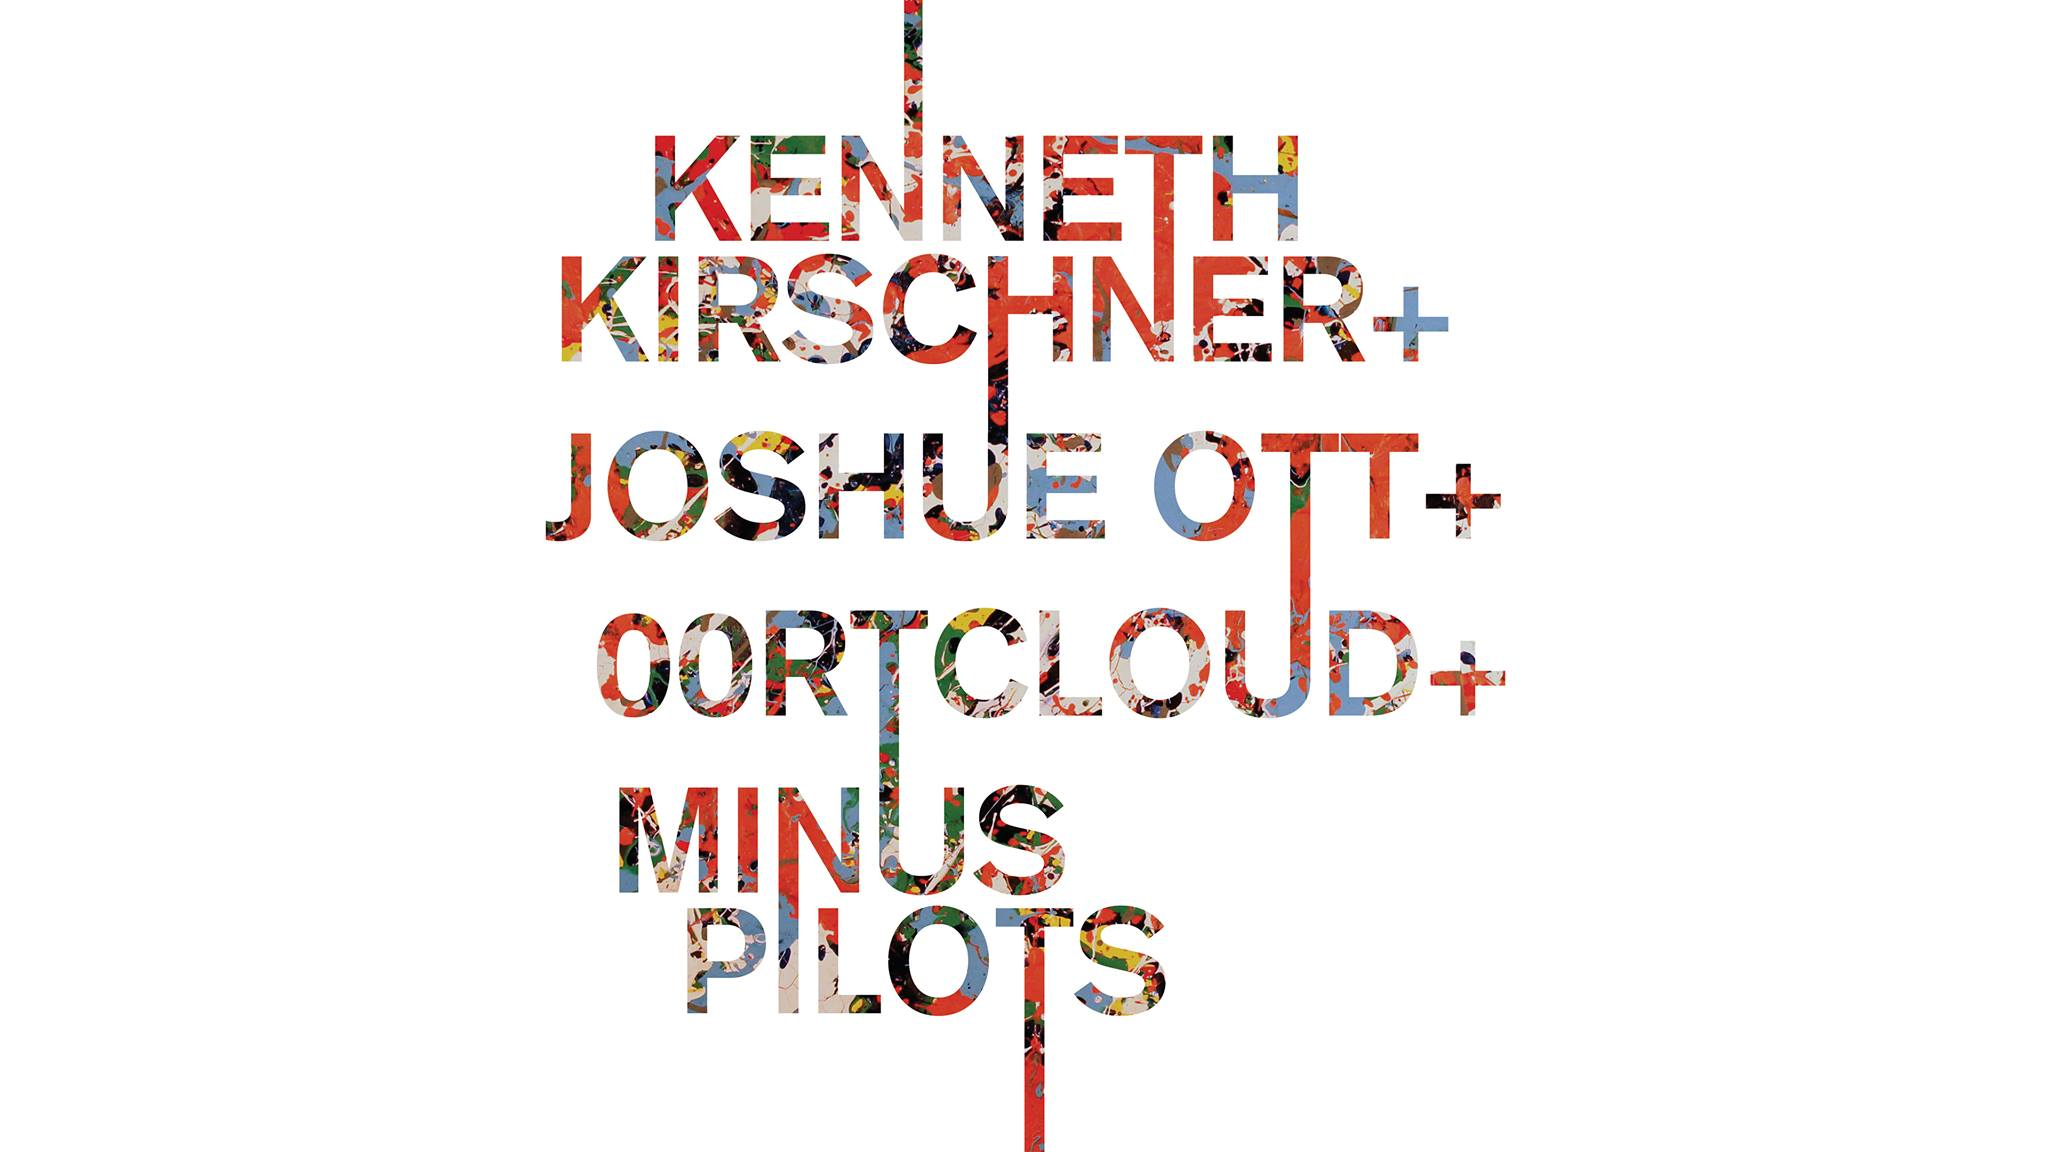 "Edition 5: Kenneth Kirschner, Joshue Ott, 00rtcloud, Minus Pilots  - - - - -  There will be a 7"" featuring music/art by the performing artists that will be limited to 5 individually numbered copies total. They will be given away via random draw and will only be available at this event.  - - - - -  Kenneth Kirschner The music of Kenneth Kirschner is situated at the intersection of contemporary classical composition and experimental electronic music. His work is characterized by a close integration of acoustic and electronic sound sources. Kirschner is based in Brooklyn, New York.  kennethkirschner.com   - - - - -  Joshue Ott Joshue Ott is a visualist and software designer who creates cinematic visual improvisations that are performed live and projected in large scale. Working from hand-drawn forms manipulated in real time with superDraw, a software instrument of his own design, Ott composes evolving images that reside somewhere between minimalism, psychedelia and Cagean chance.  Ott is based in Brooklyn, New York.  joshueott.com   - - - - -  00rtcloud 00rtcloud is a downbeat, ambient, drone and experimental project which involves Joshue Ott performing visuals with Superdraw, his custom freeform visualization software, and Todd Polenberg playing various synthesizers and found objects using slow and measured extended techniques. 00rtcloud are based in Brooklyn, New York.  toddpolenberg.com   00rtcloud.com   - - - - -  Minus Pilots Minus Pilots is percussionist Matt Pittori and bassist Adam Barringer. Touching the realms of modern classical, cinematic, post-rock and post-jazz to weave sparse textures, crumbling atmospheres and fractured drones with currents of gentle crackle. Minus Pilots are based in London, England.  minuspilots.com   - - - - -  8pm 